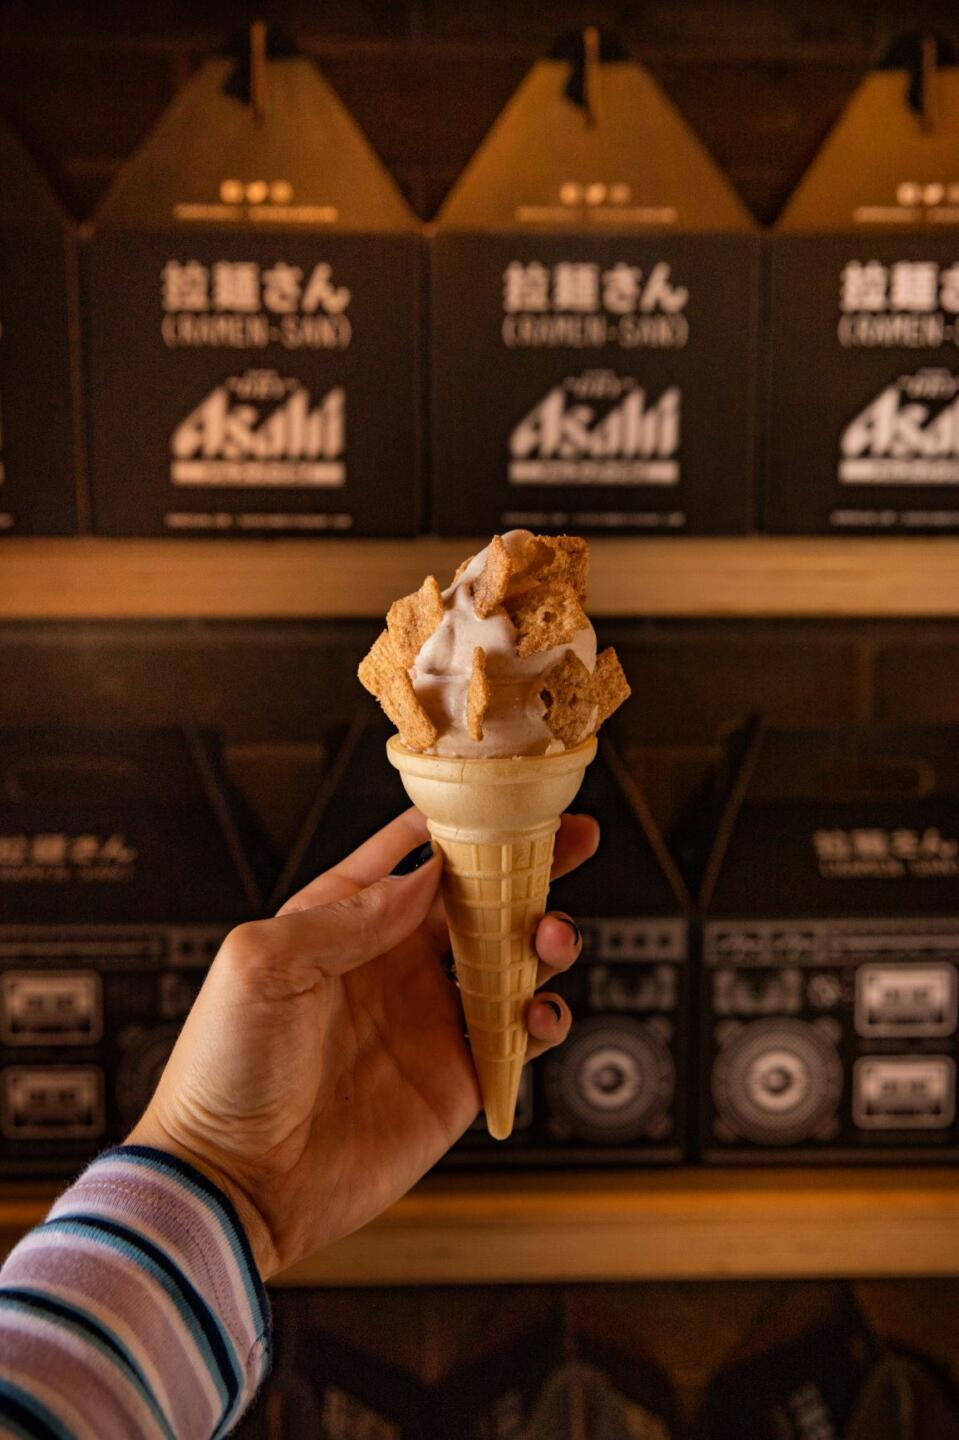 Sushi san cinnamon toast crunch ice cream